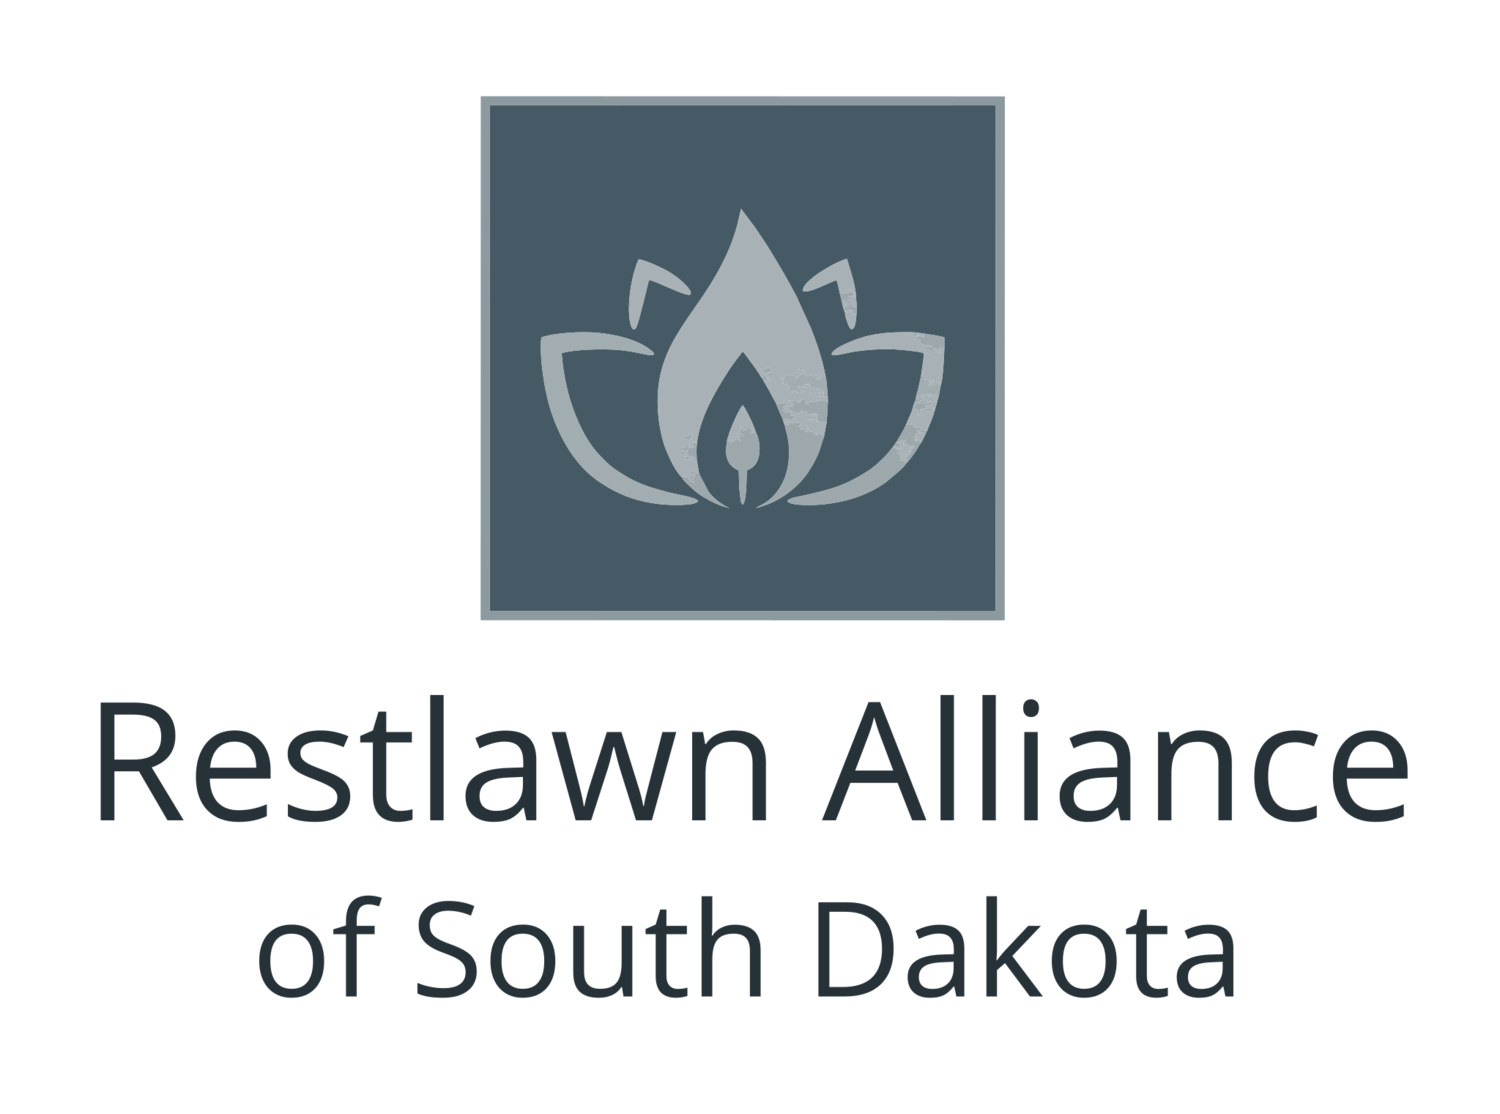 Restlawn Alliance of South Dakota